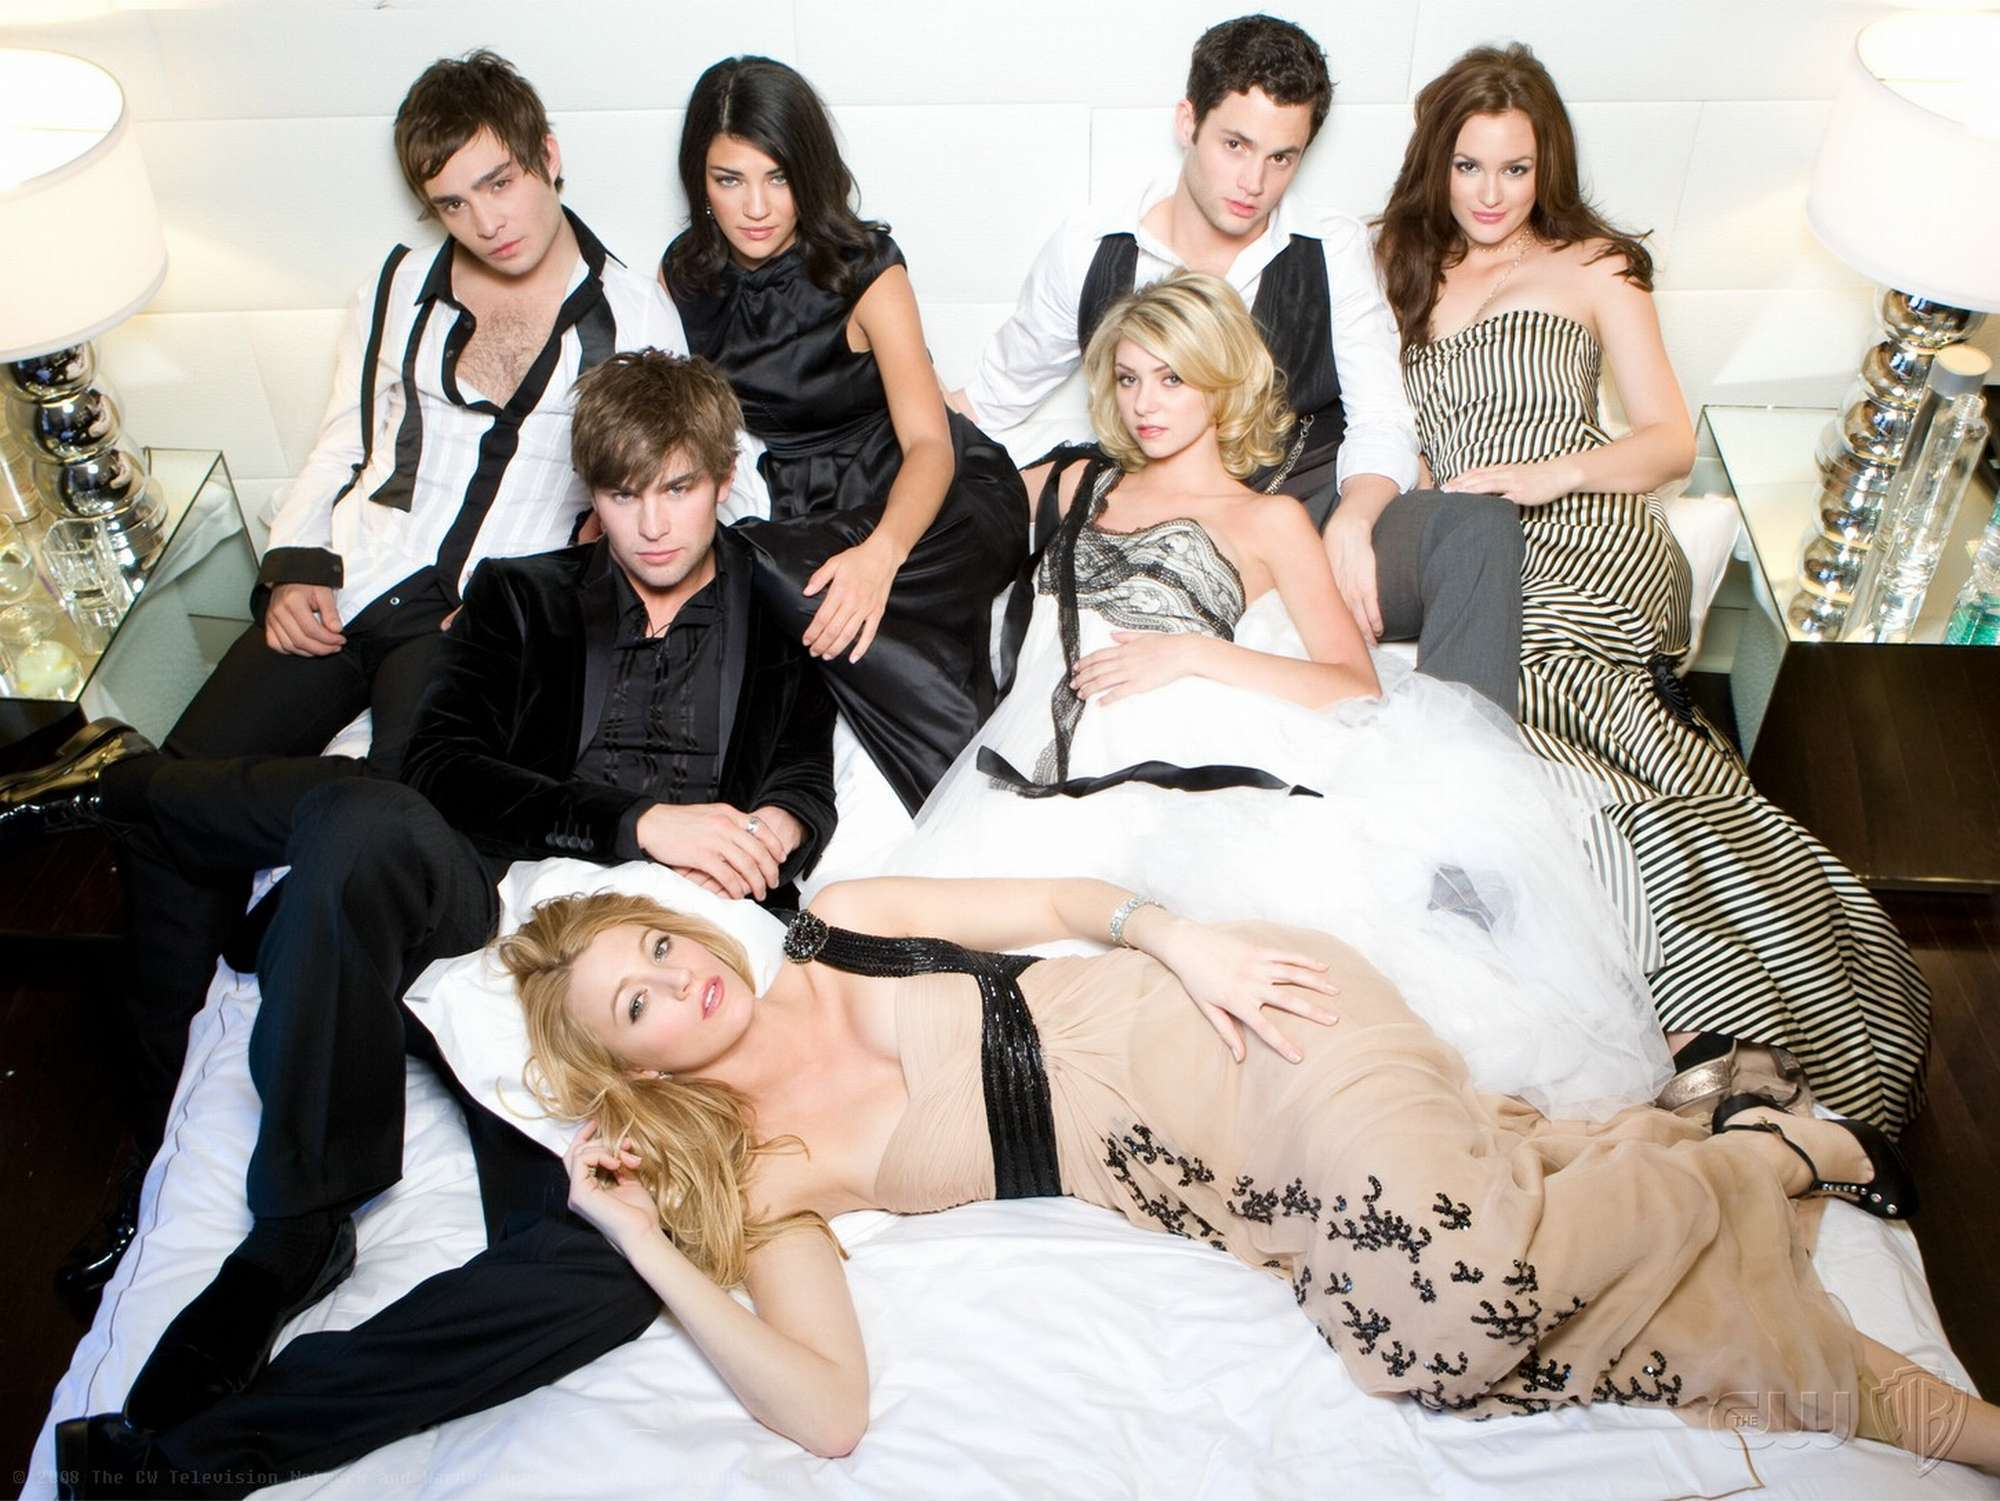 new outtakes from photoshoot - gossip girl photo  2307396